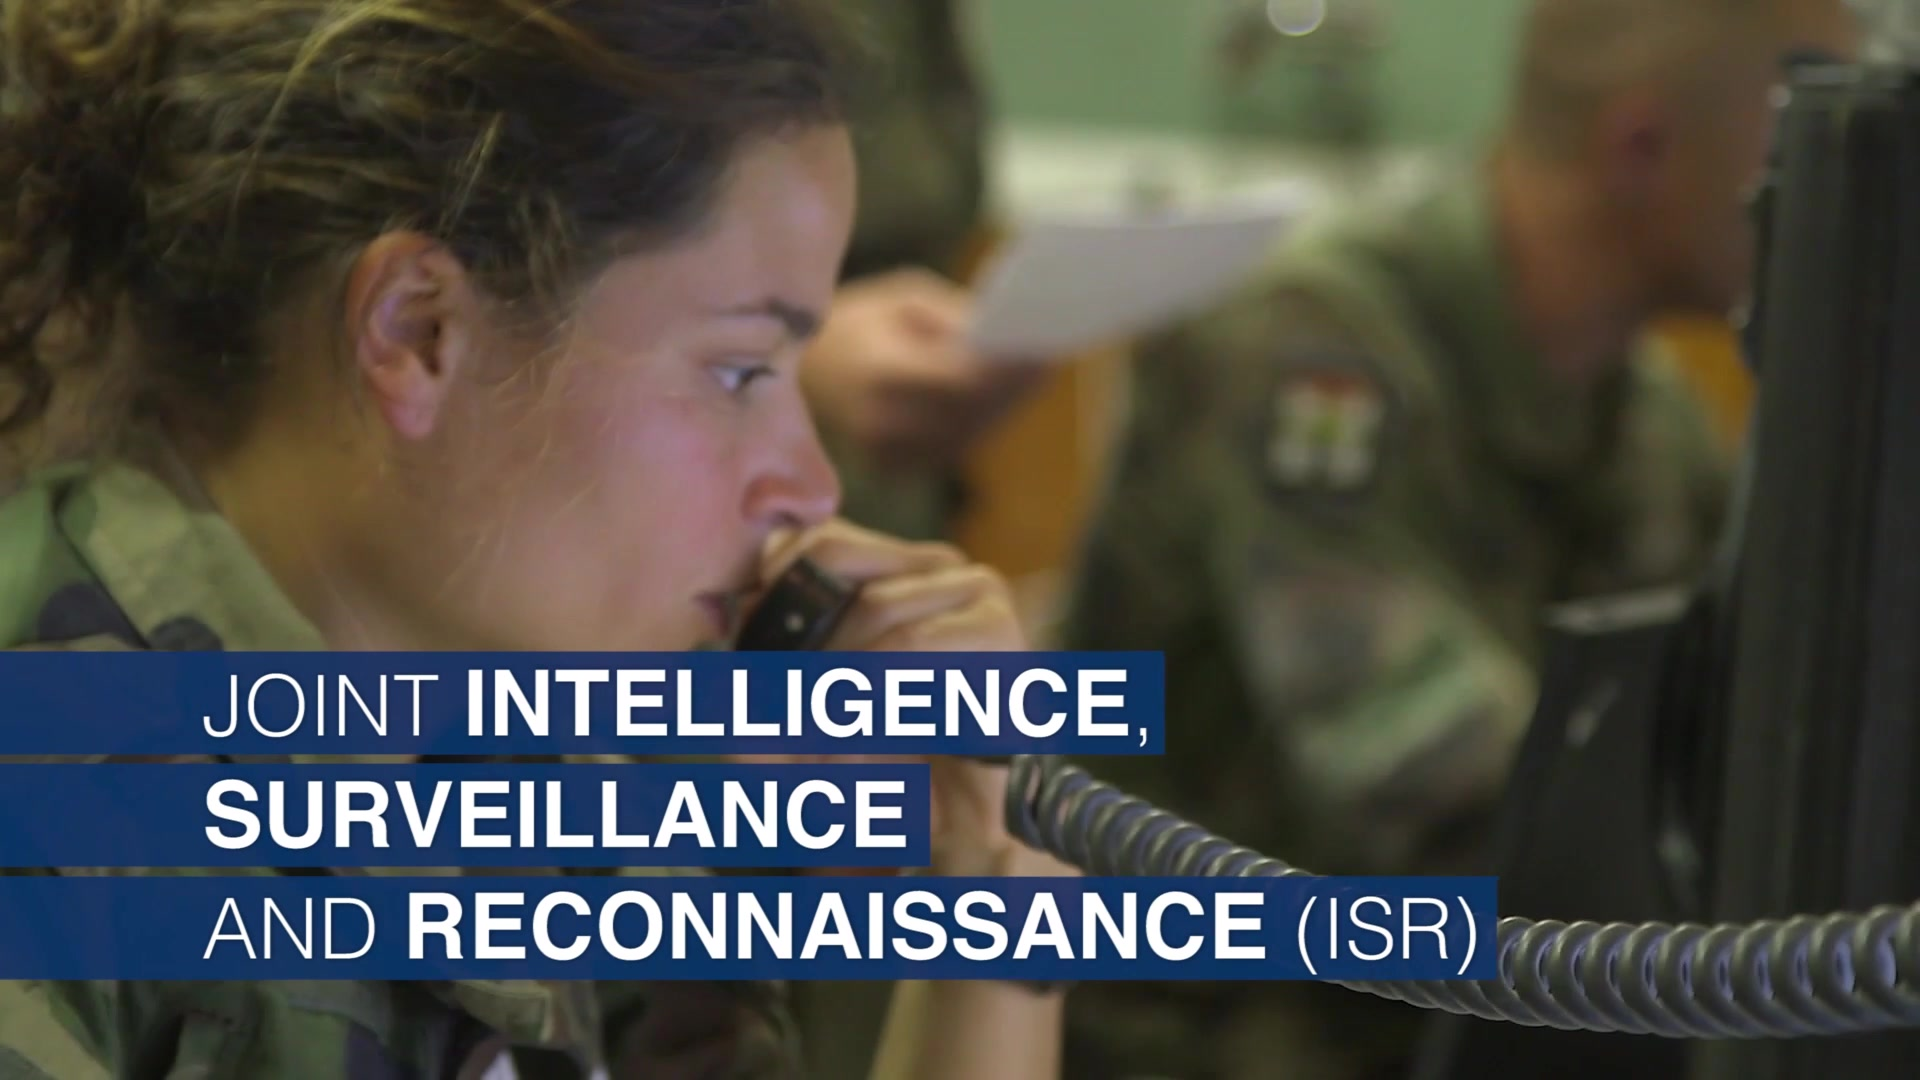 Unified Vision trials are the premier NATO event at which Allies trial various Joint Intelligence, Reconnaissance and Surveillance (ISR) activities, be they technical or procedural, utilising national ISR capabilities in a live environment. The trial runs from 4 -29 June.  In consideration of security challenges the Alliance is currently facing, Unified Vision 2018 (UV18) is focusing on Joint ISR techniques in a wide variety of contexts, including in support of the Alliance's counter-terrorism efforts.   For more information on Joint ISR visit the topic page at: https://www.nato.int/cps/en/natohq/topics_111830.htm